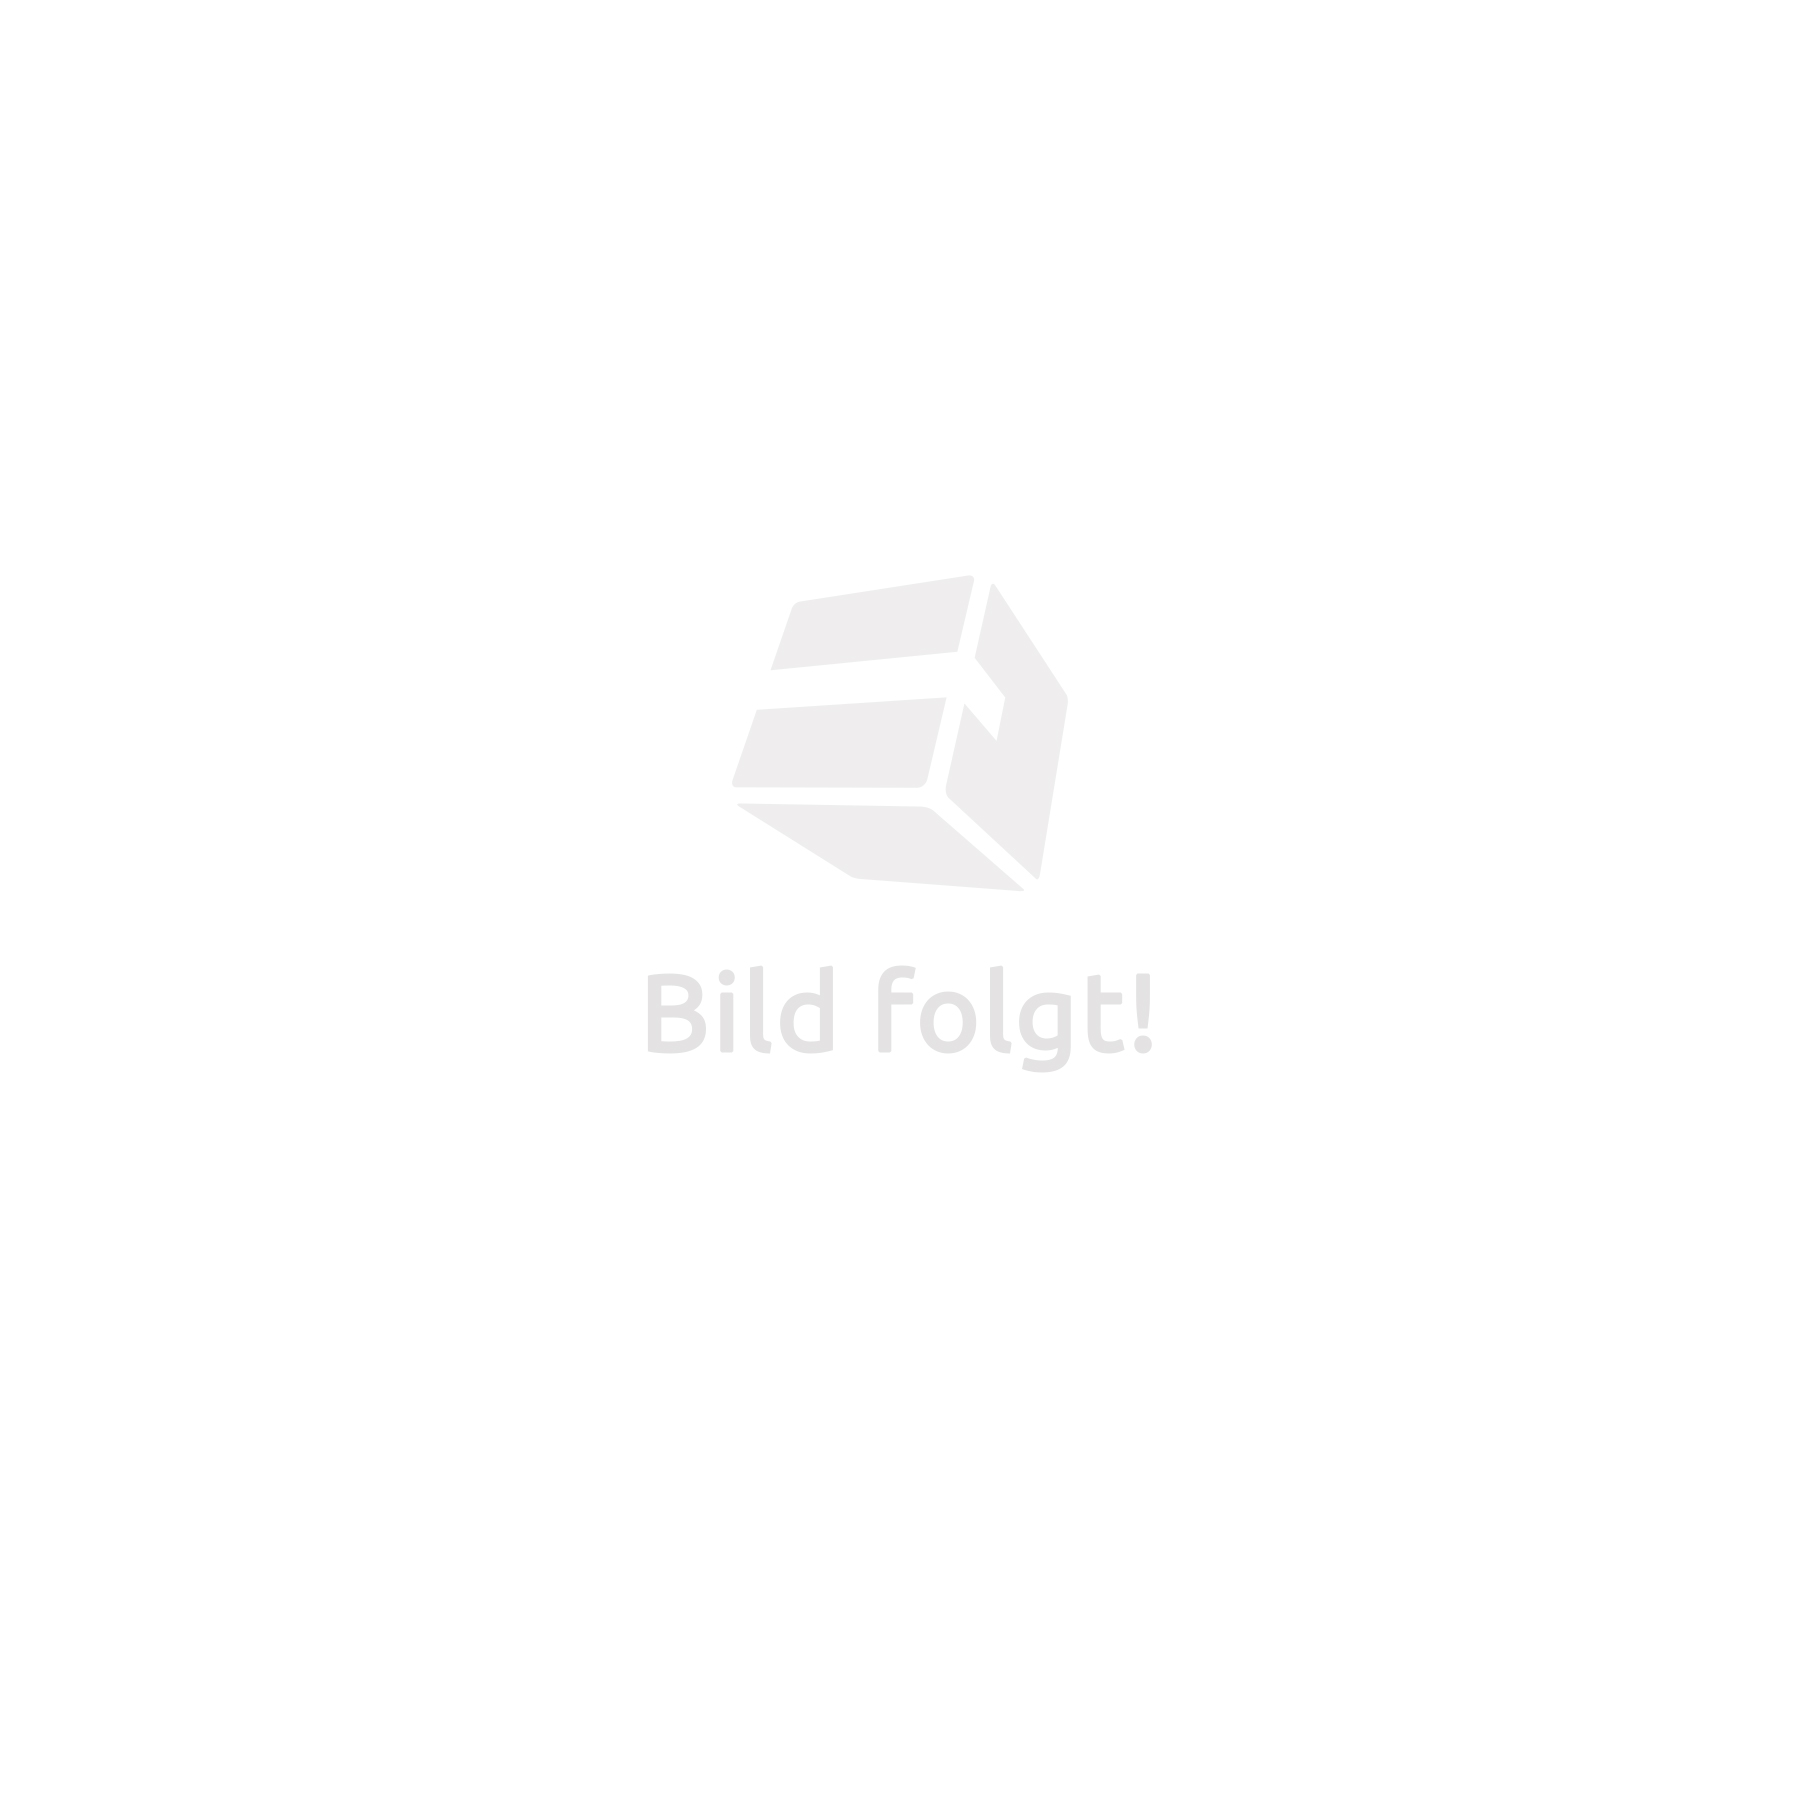 station de musculation cage musculation dips fitness gym. Black Bedroom Furniture Sets. Home Design Ideas